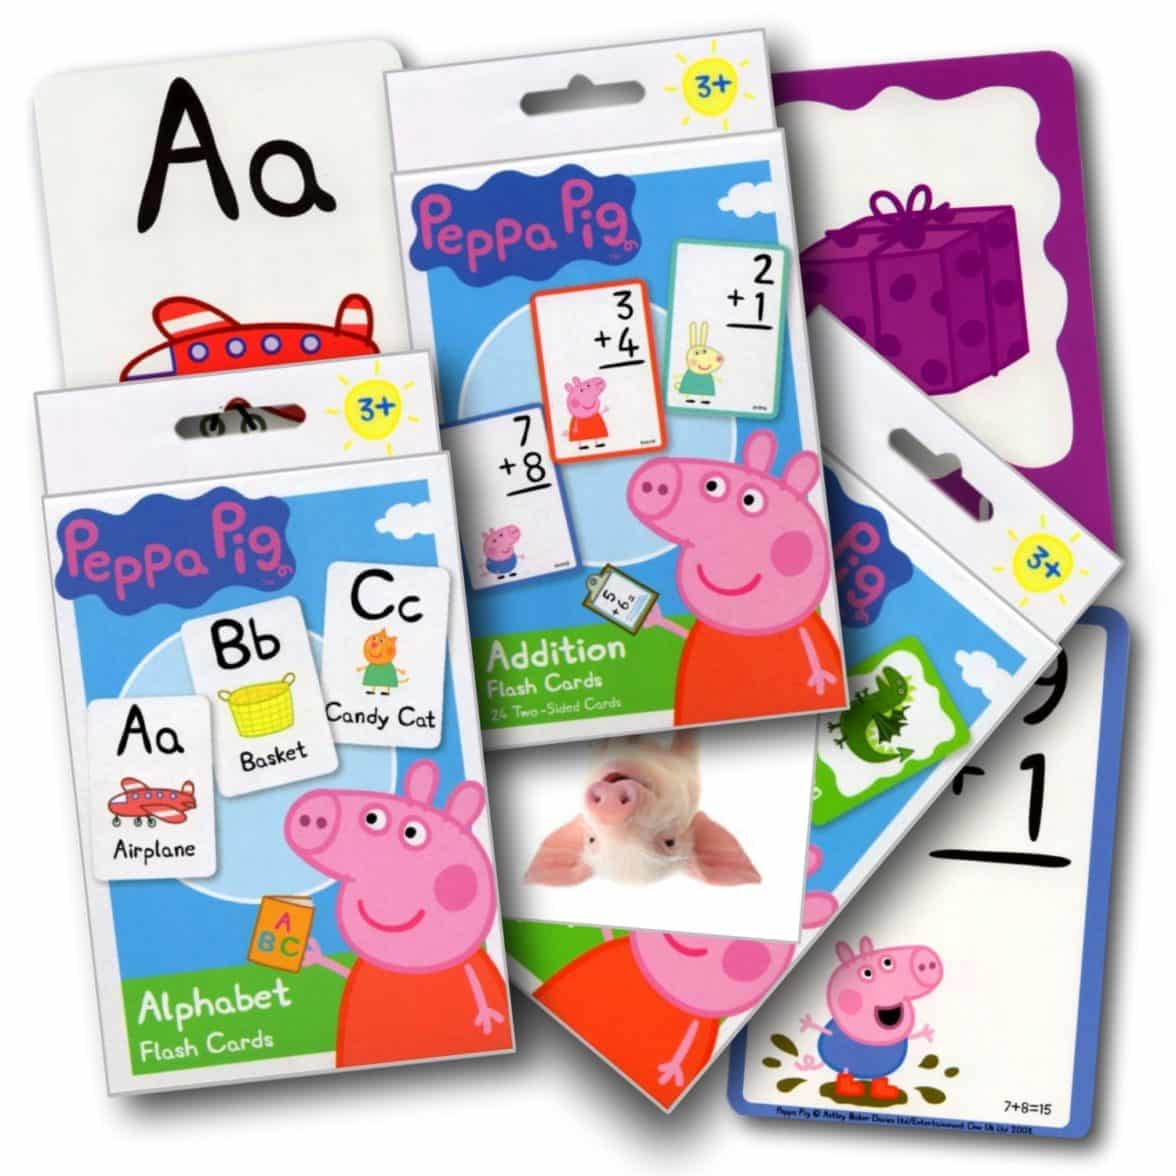 Peppa Pig Flash Cards Set (3 Pack) with Sticker